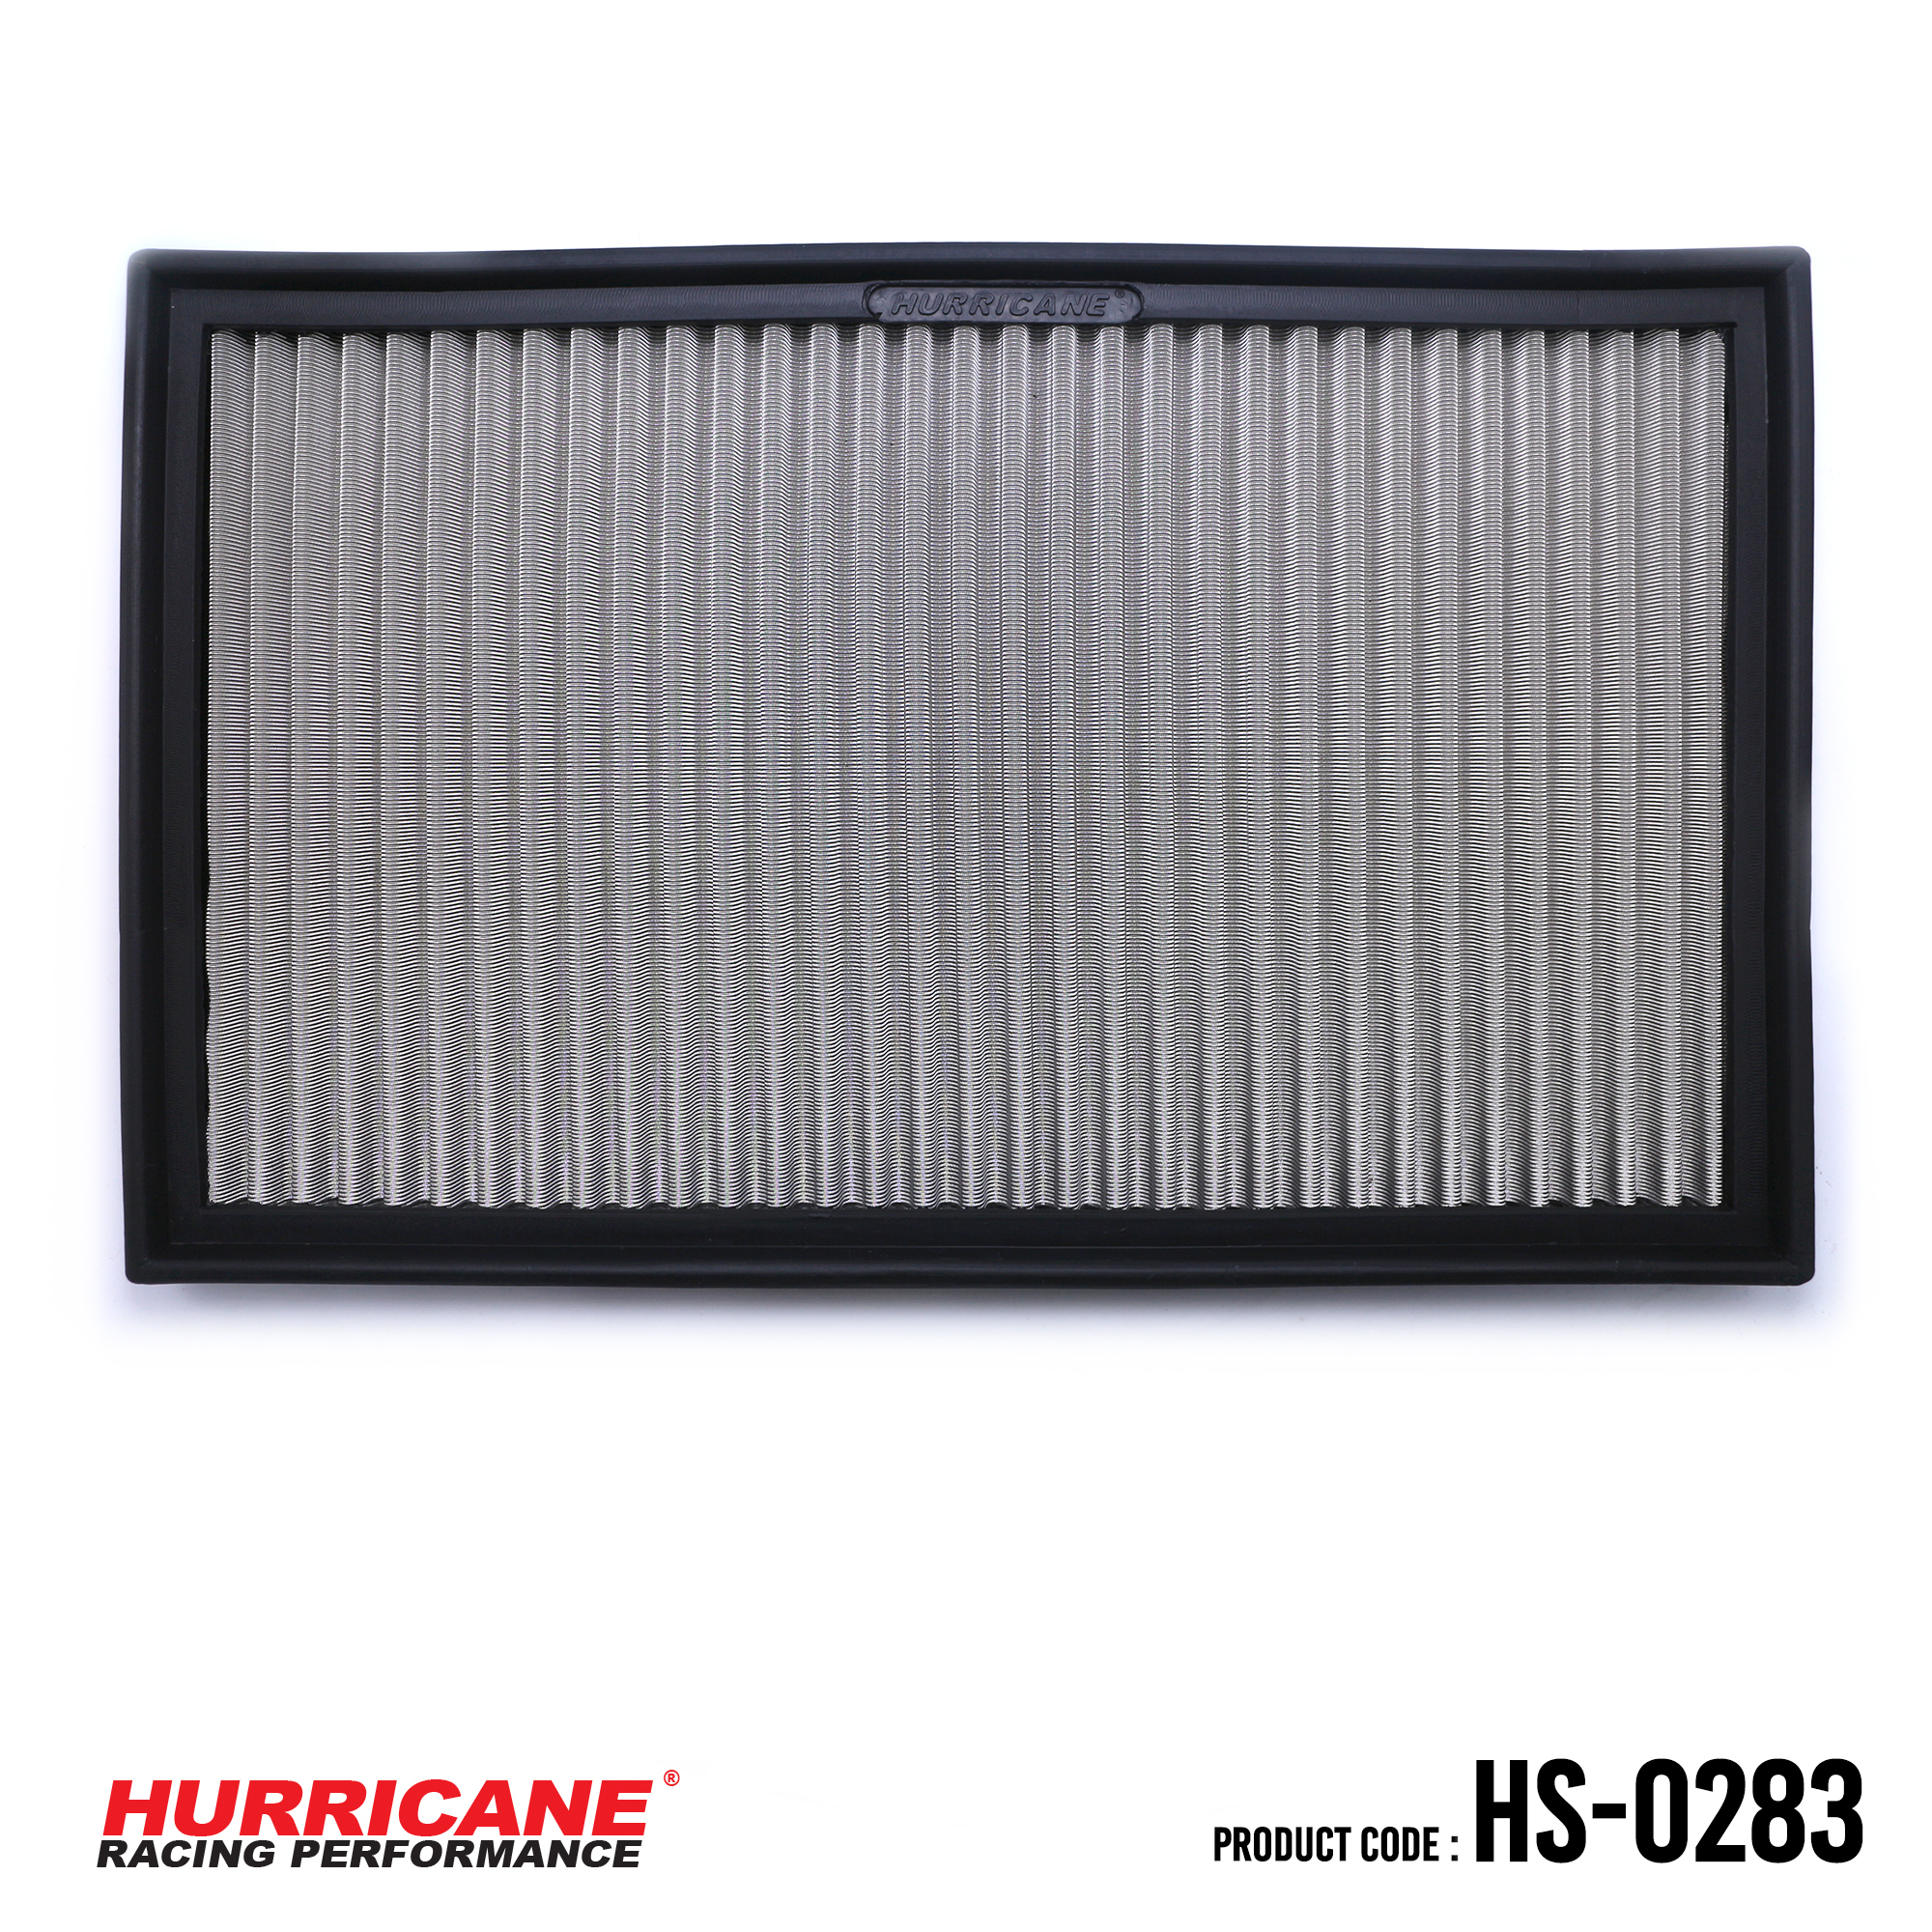 HURRICANE STAINLESS STEEL AIR FILTER FOR HS-0283 Volvo